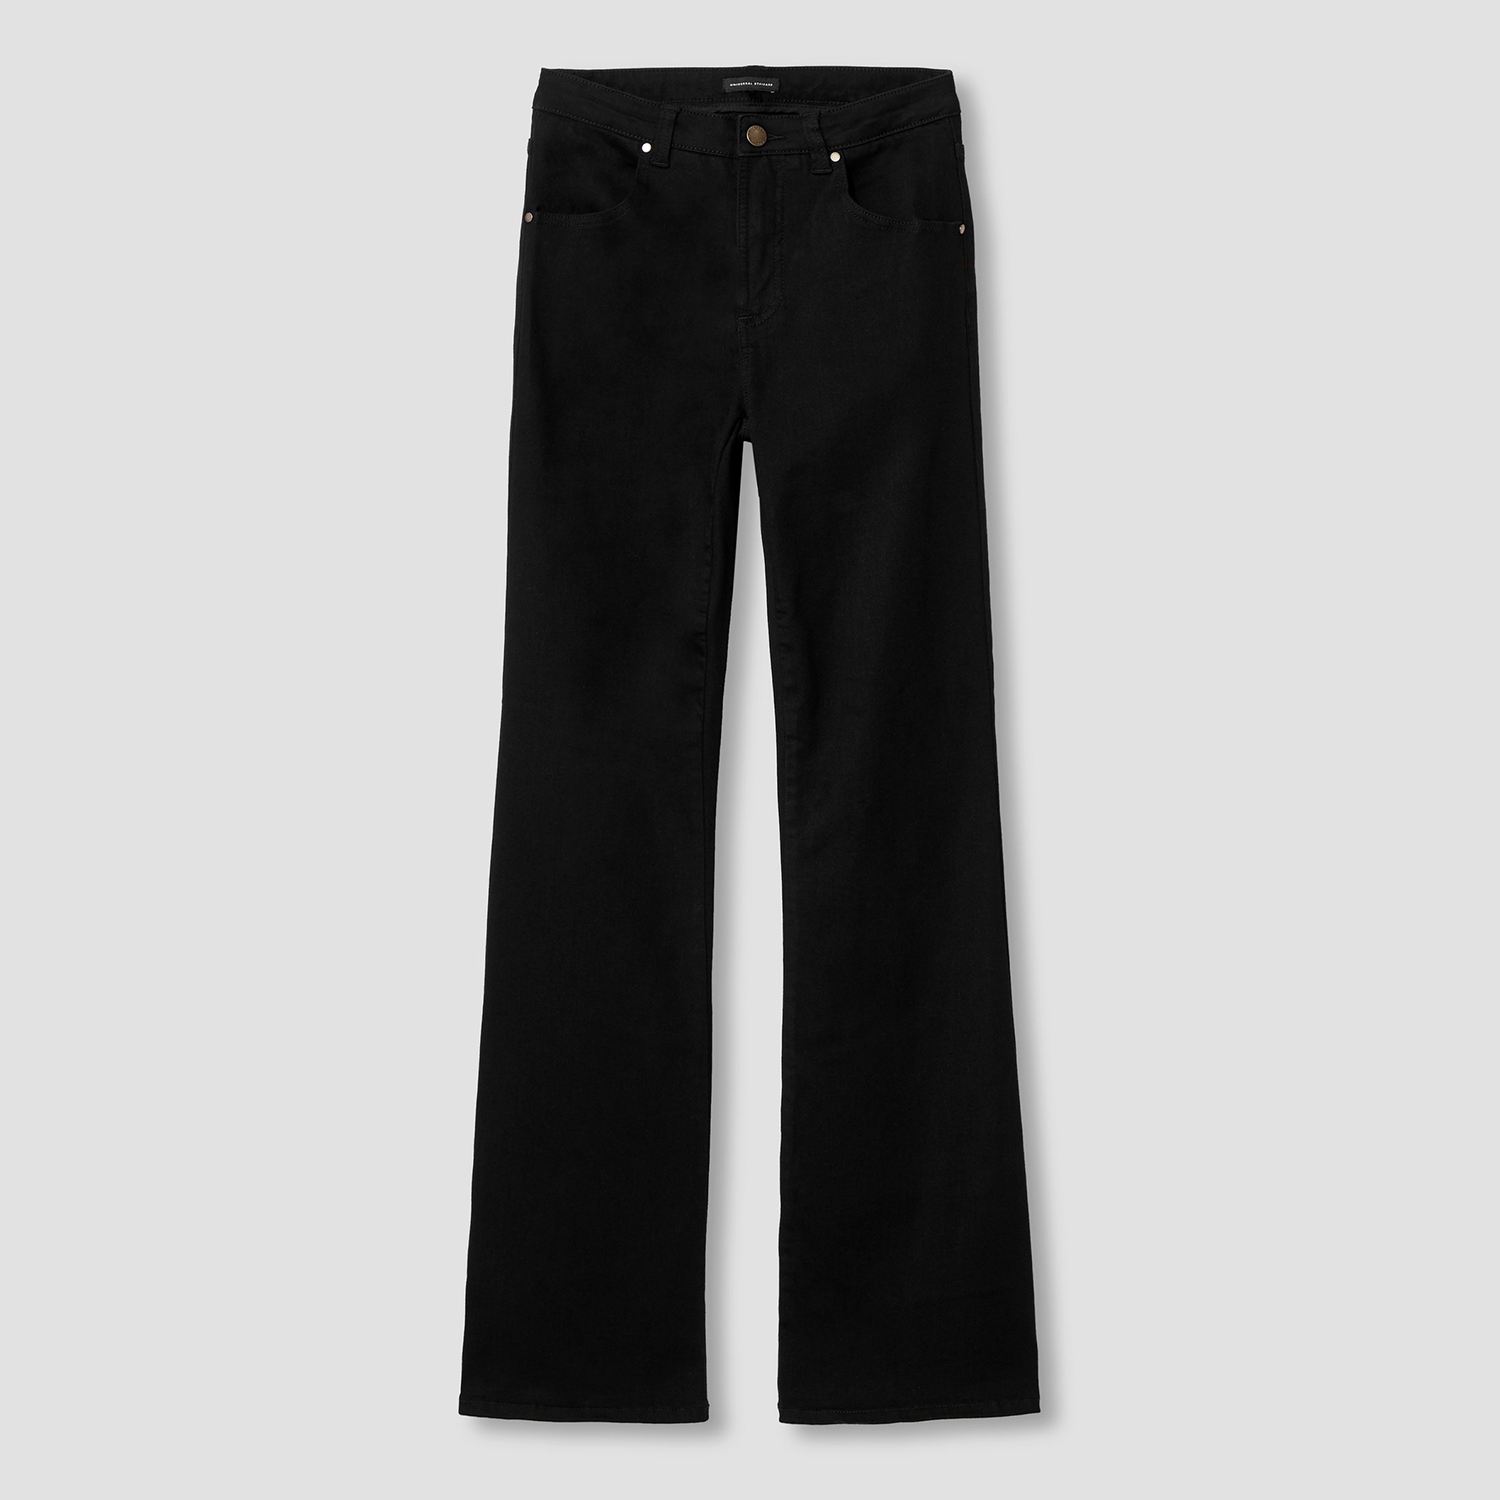 Sava High Rise Flare Jeans Black